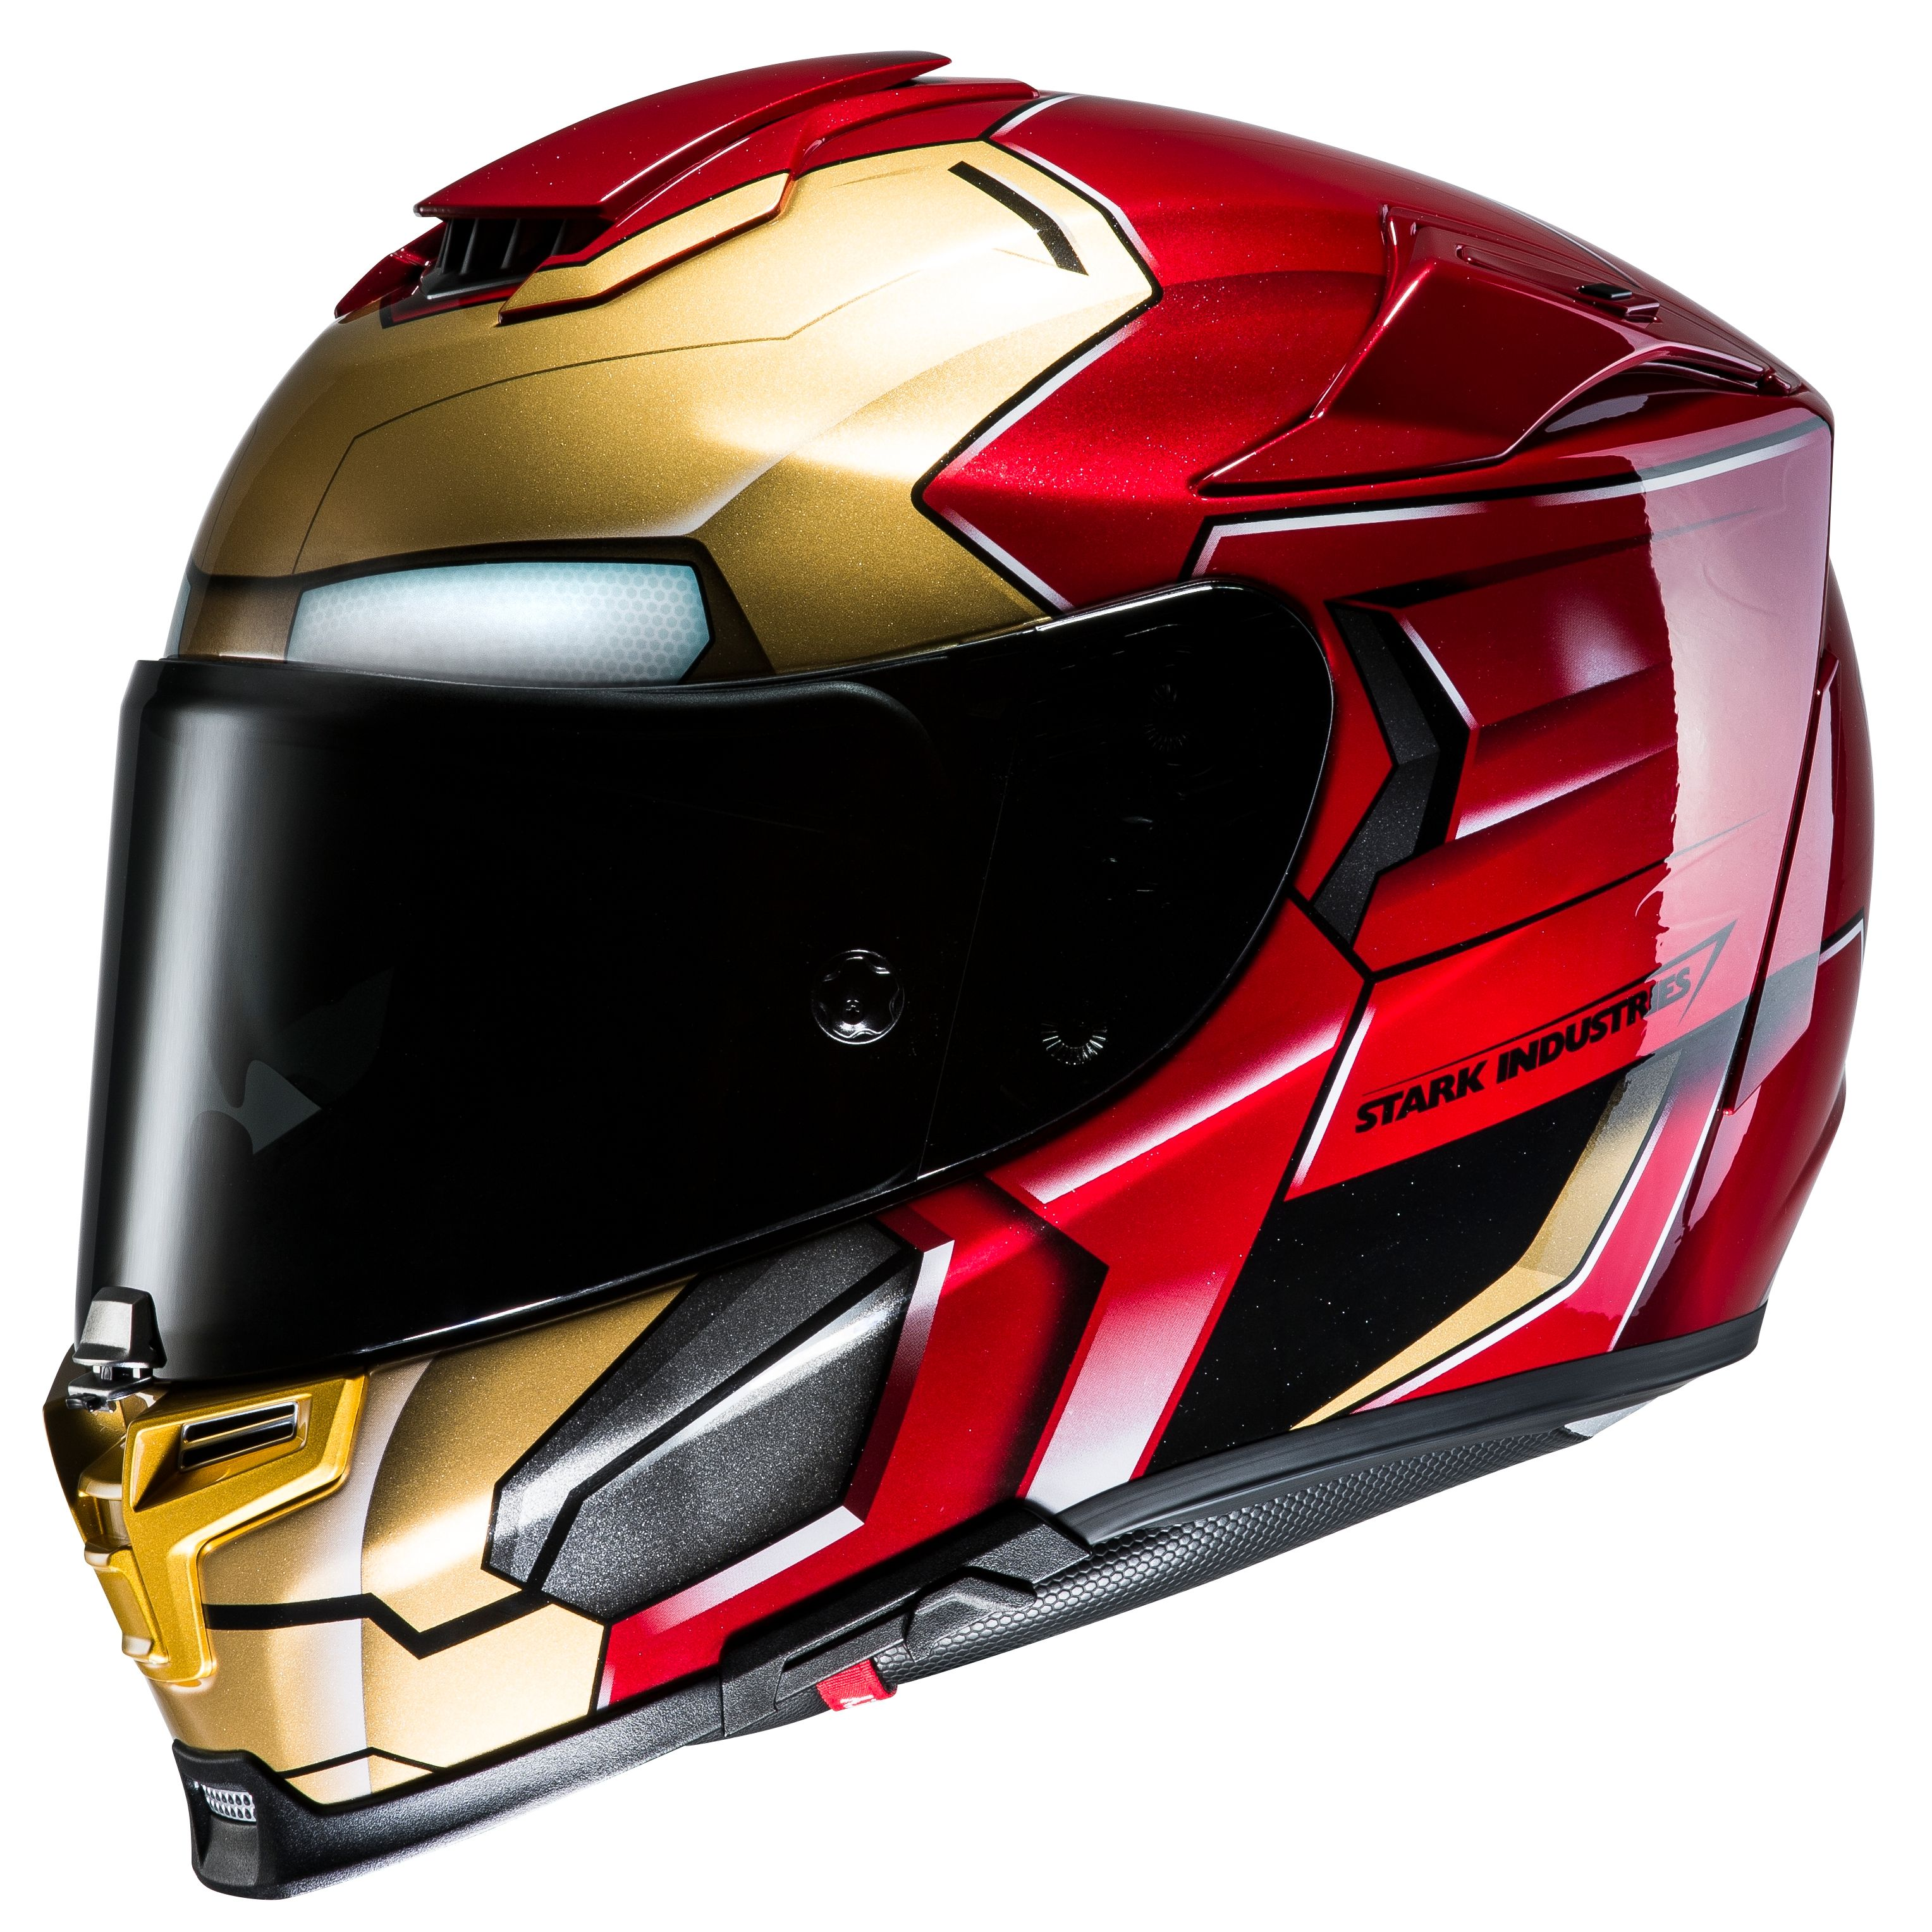 HJC-casque-rpha-70-iron-man-homecoming-marvel-image-10647200